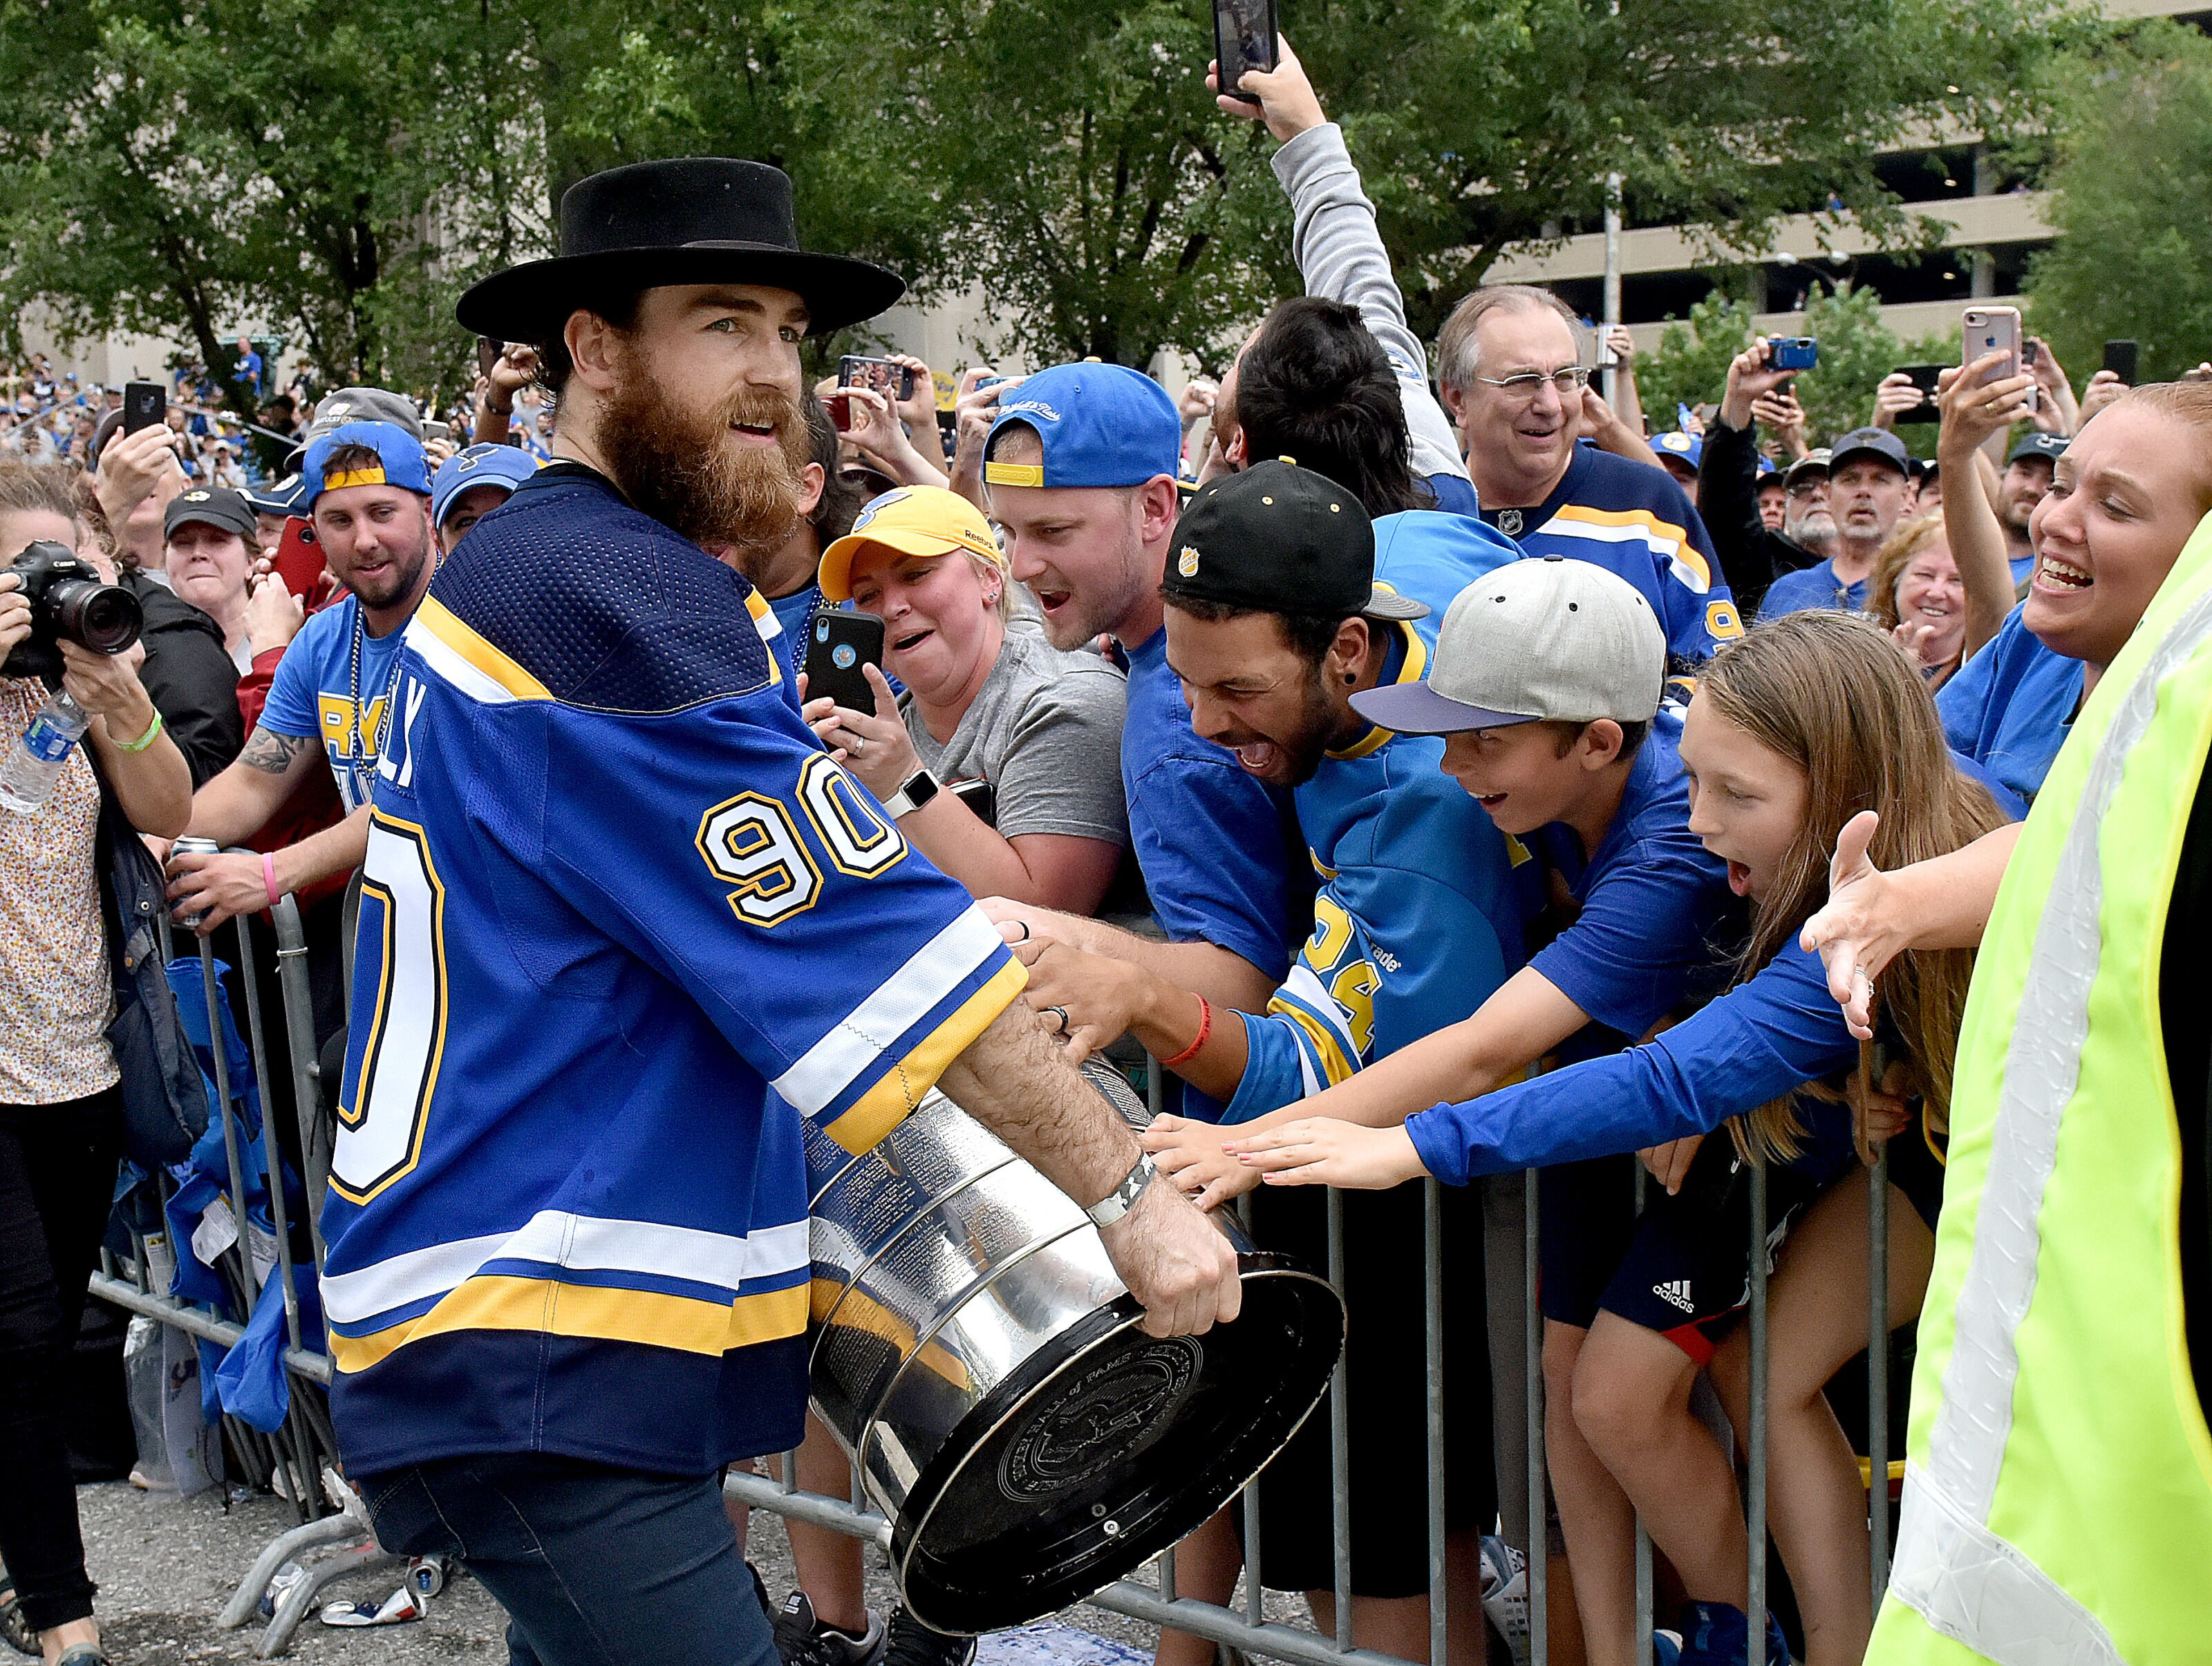 St. Louis Blues Fans Ranked 31 in FanSided 250 And #1 In NHL Fans